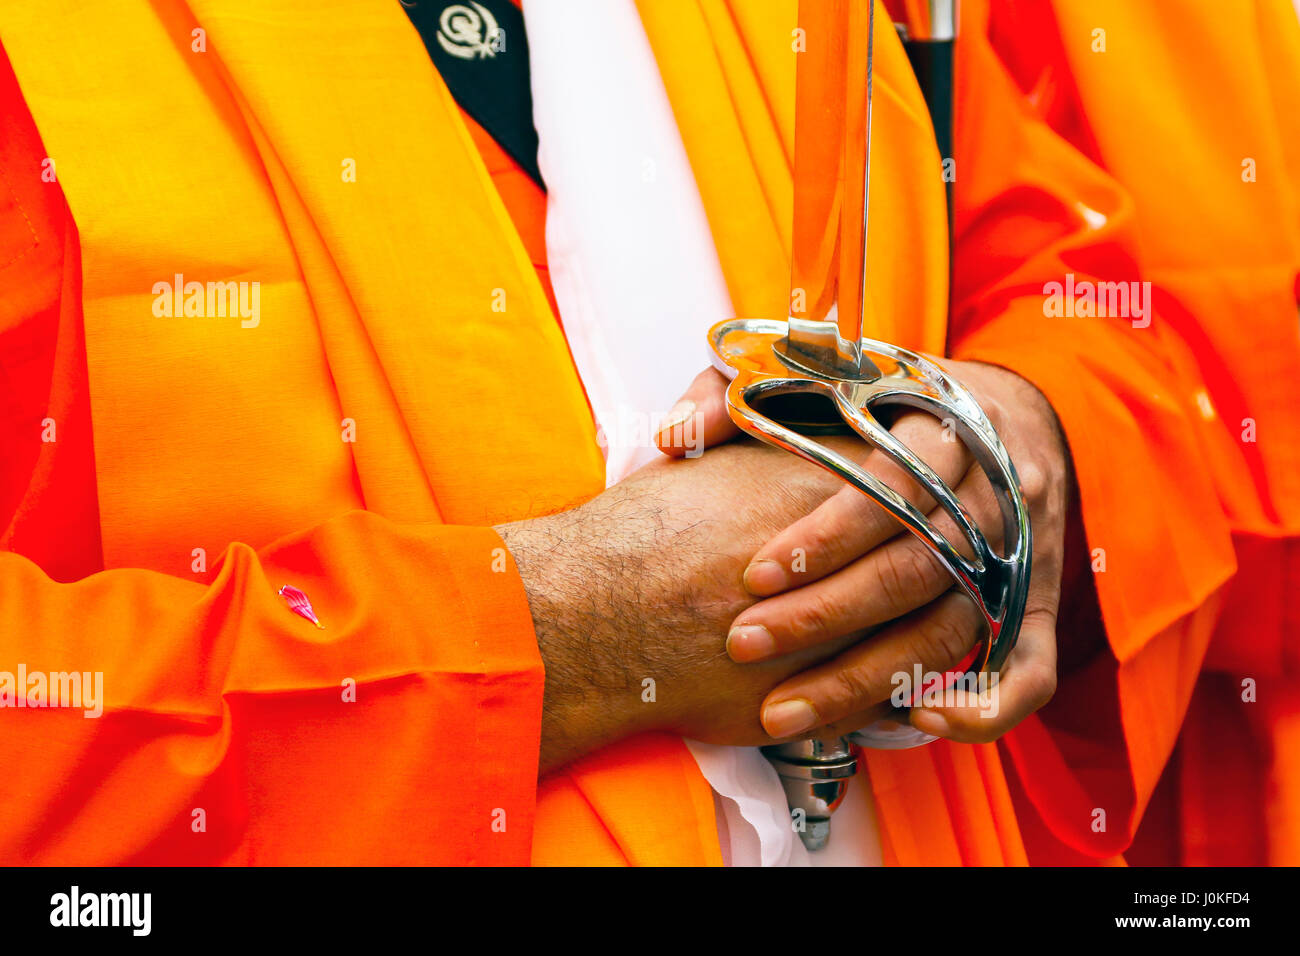 Sikh procesion of religious leaders, Panj Pyare, the beloved ones at the annual harvest festival of Vaishakhi, outside - Stock Image